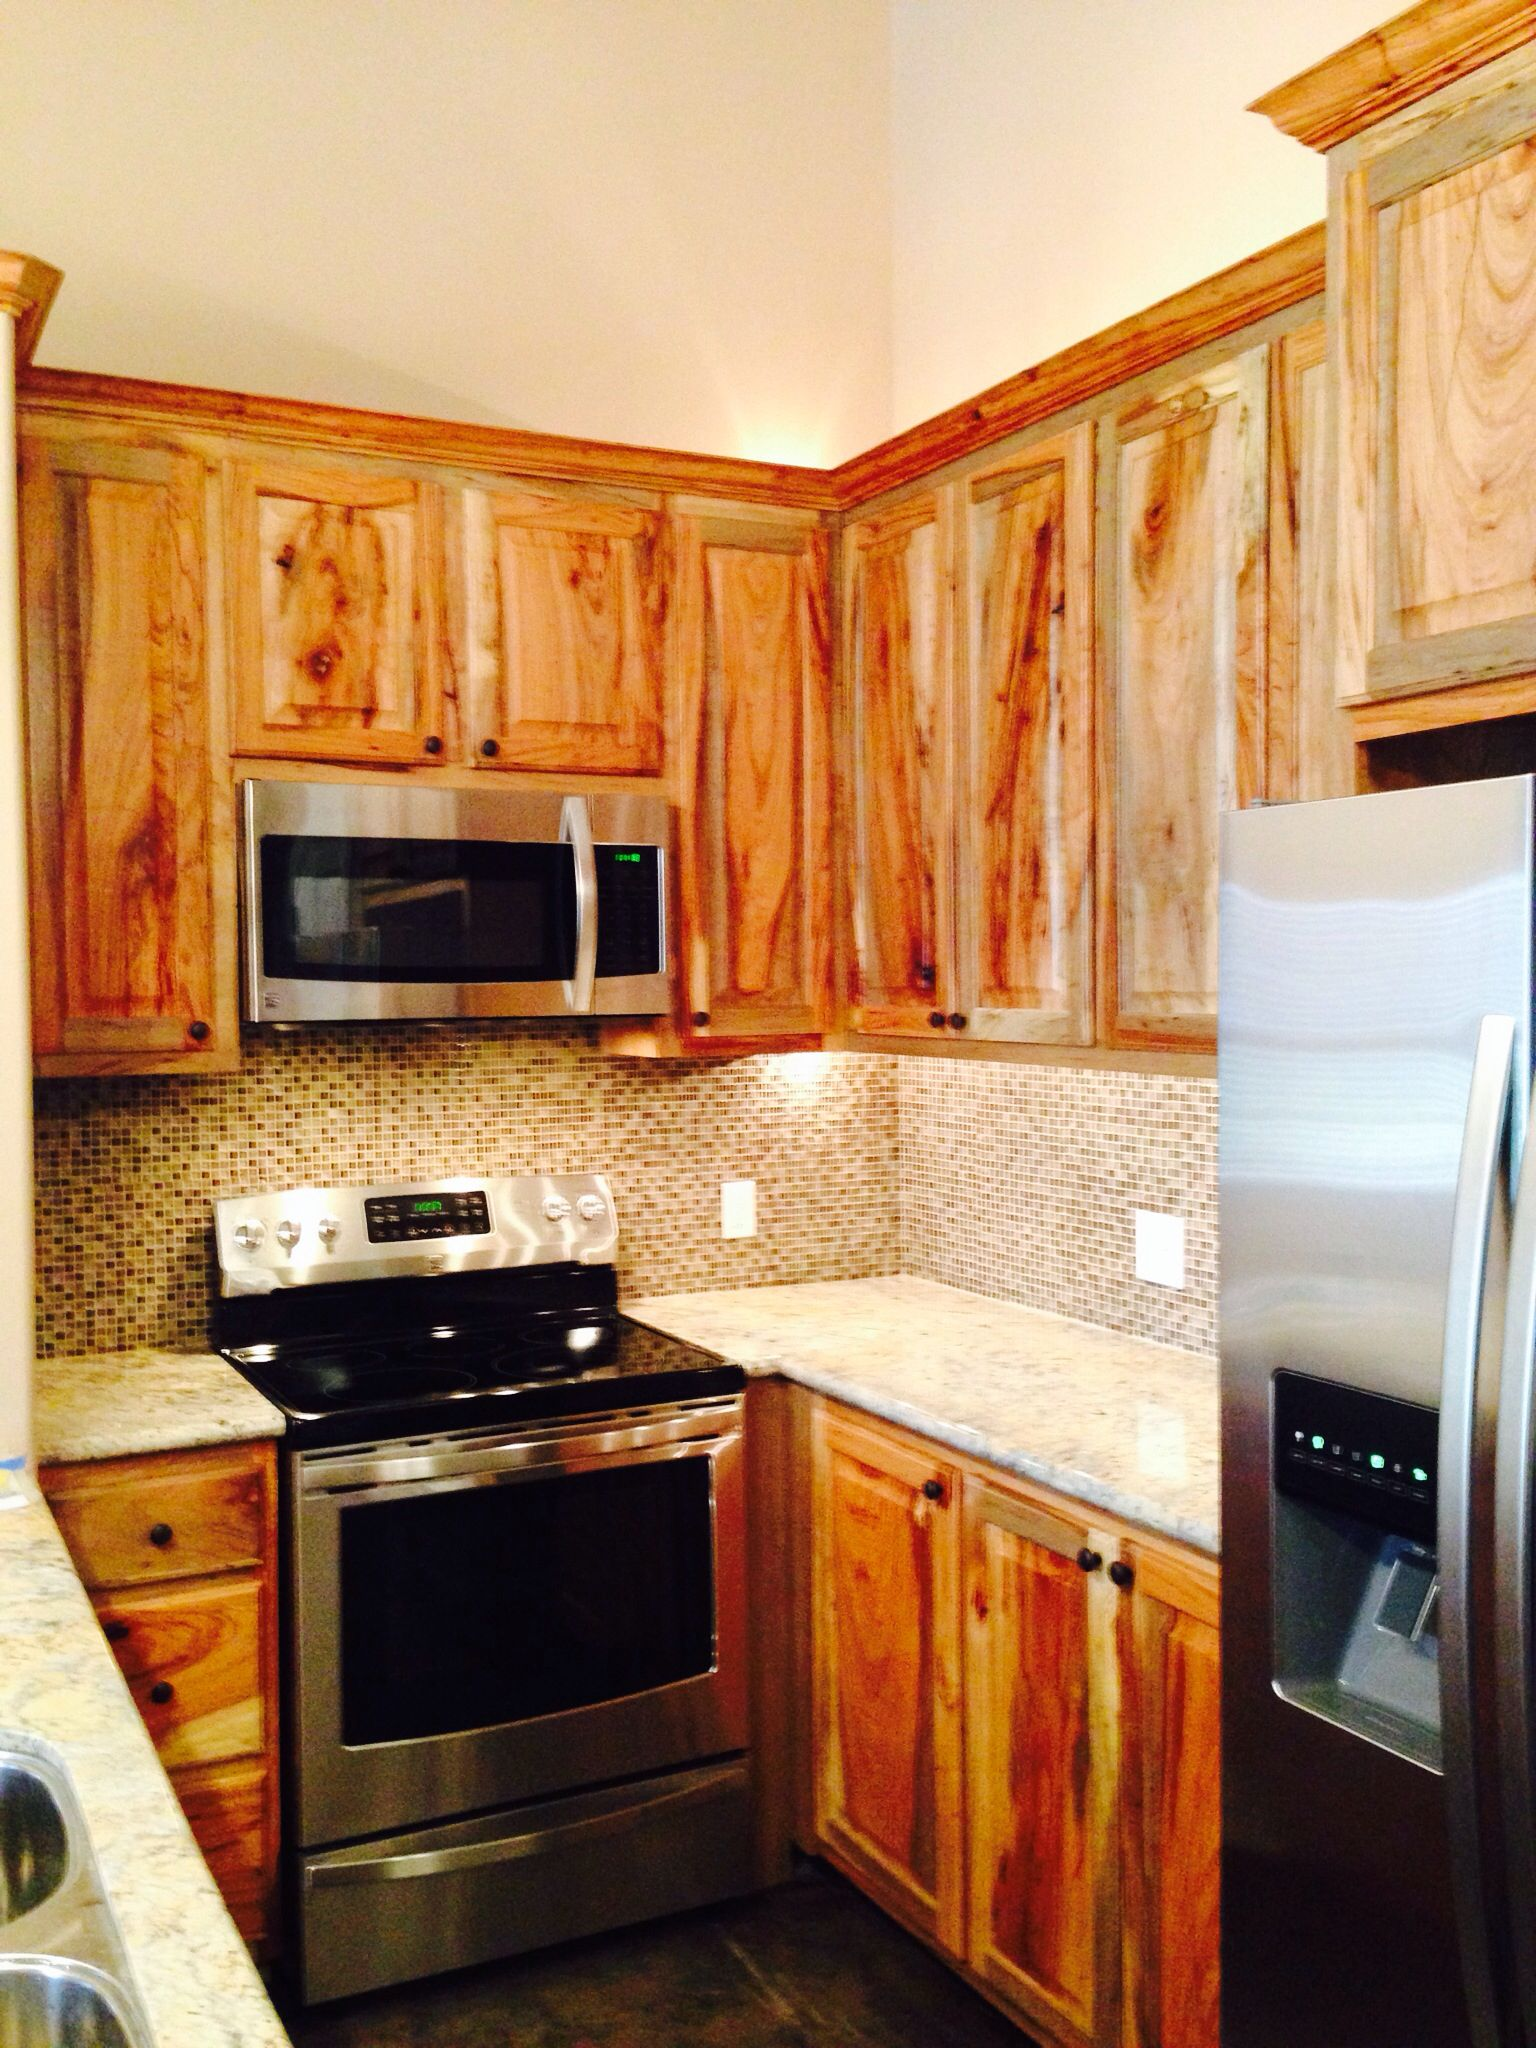 Pecan Wood Cabinets For The Home In 2019 Kitchen Cabinets Wood Cabinets Kitchen